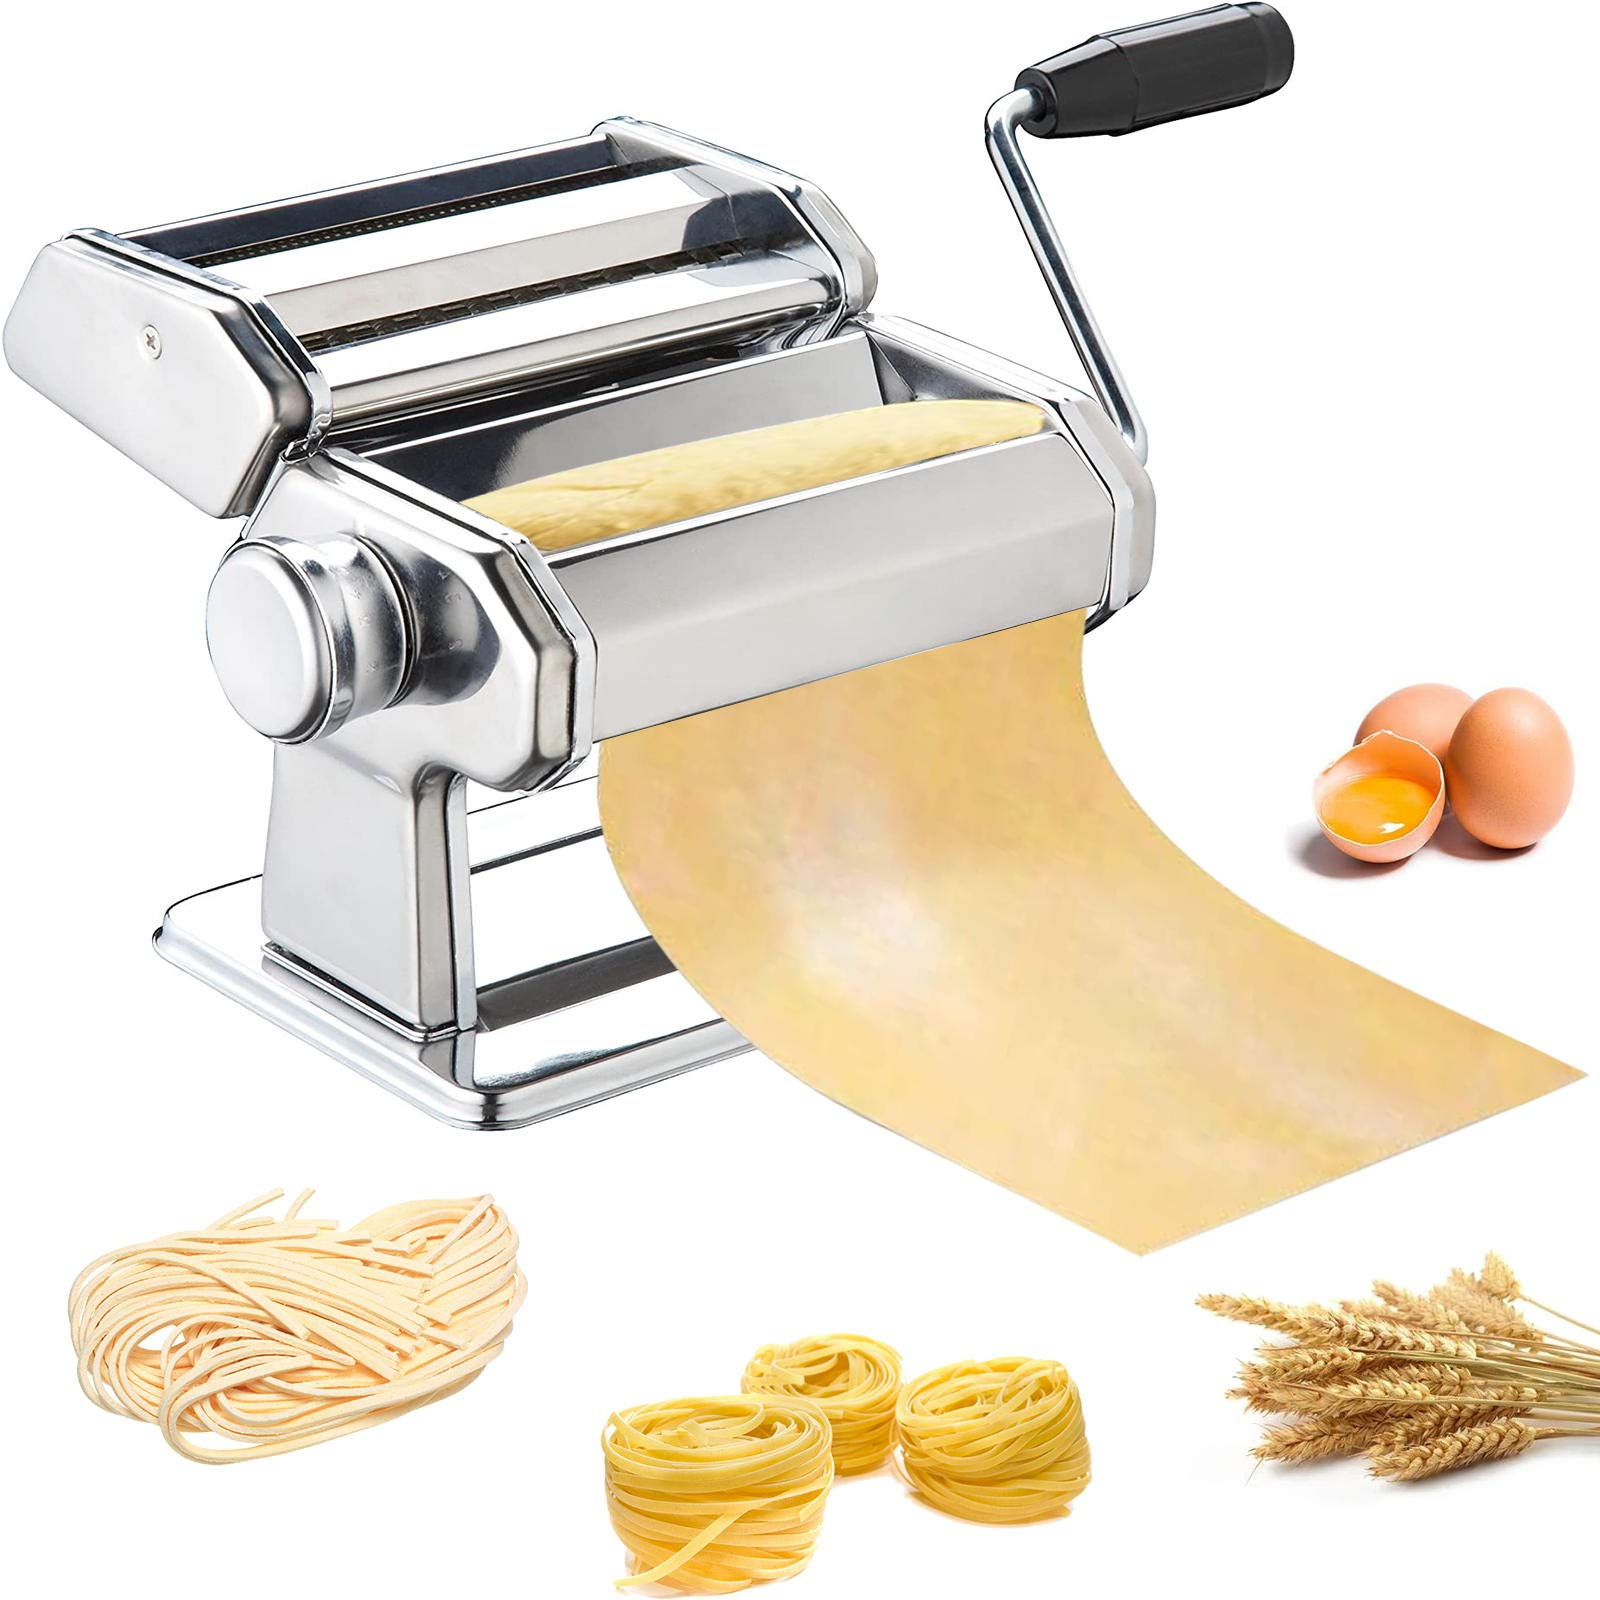 Pasta Maker, METLUCK Stainless Steel Pasta Machine Manual Roller Pasta Maker with 8 Thickness Settings for Spaghetti Linguine Fettuccine Lasagne, Includes Dough Cutter & Hand Crank